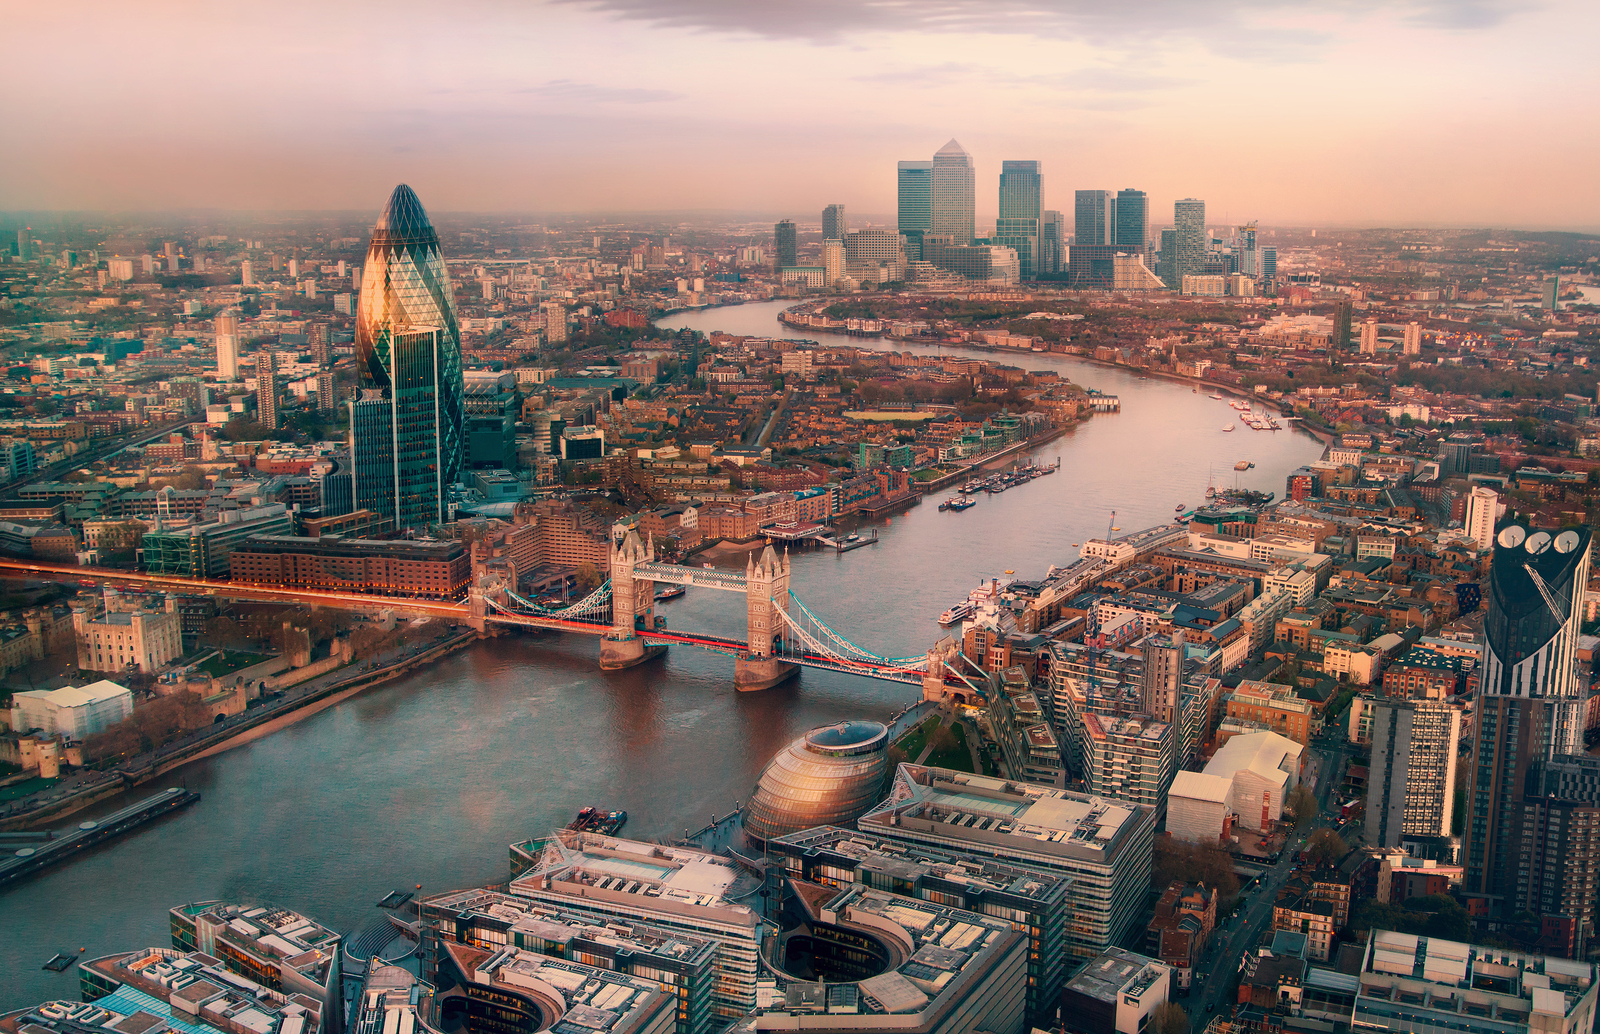 London The Top Pick For Travel This Year!